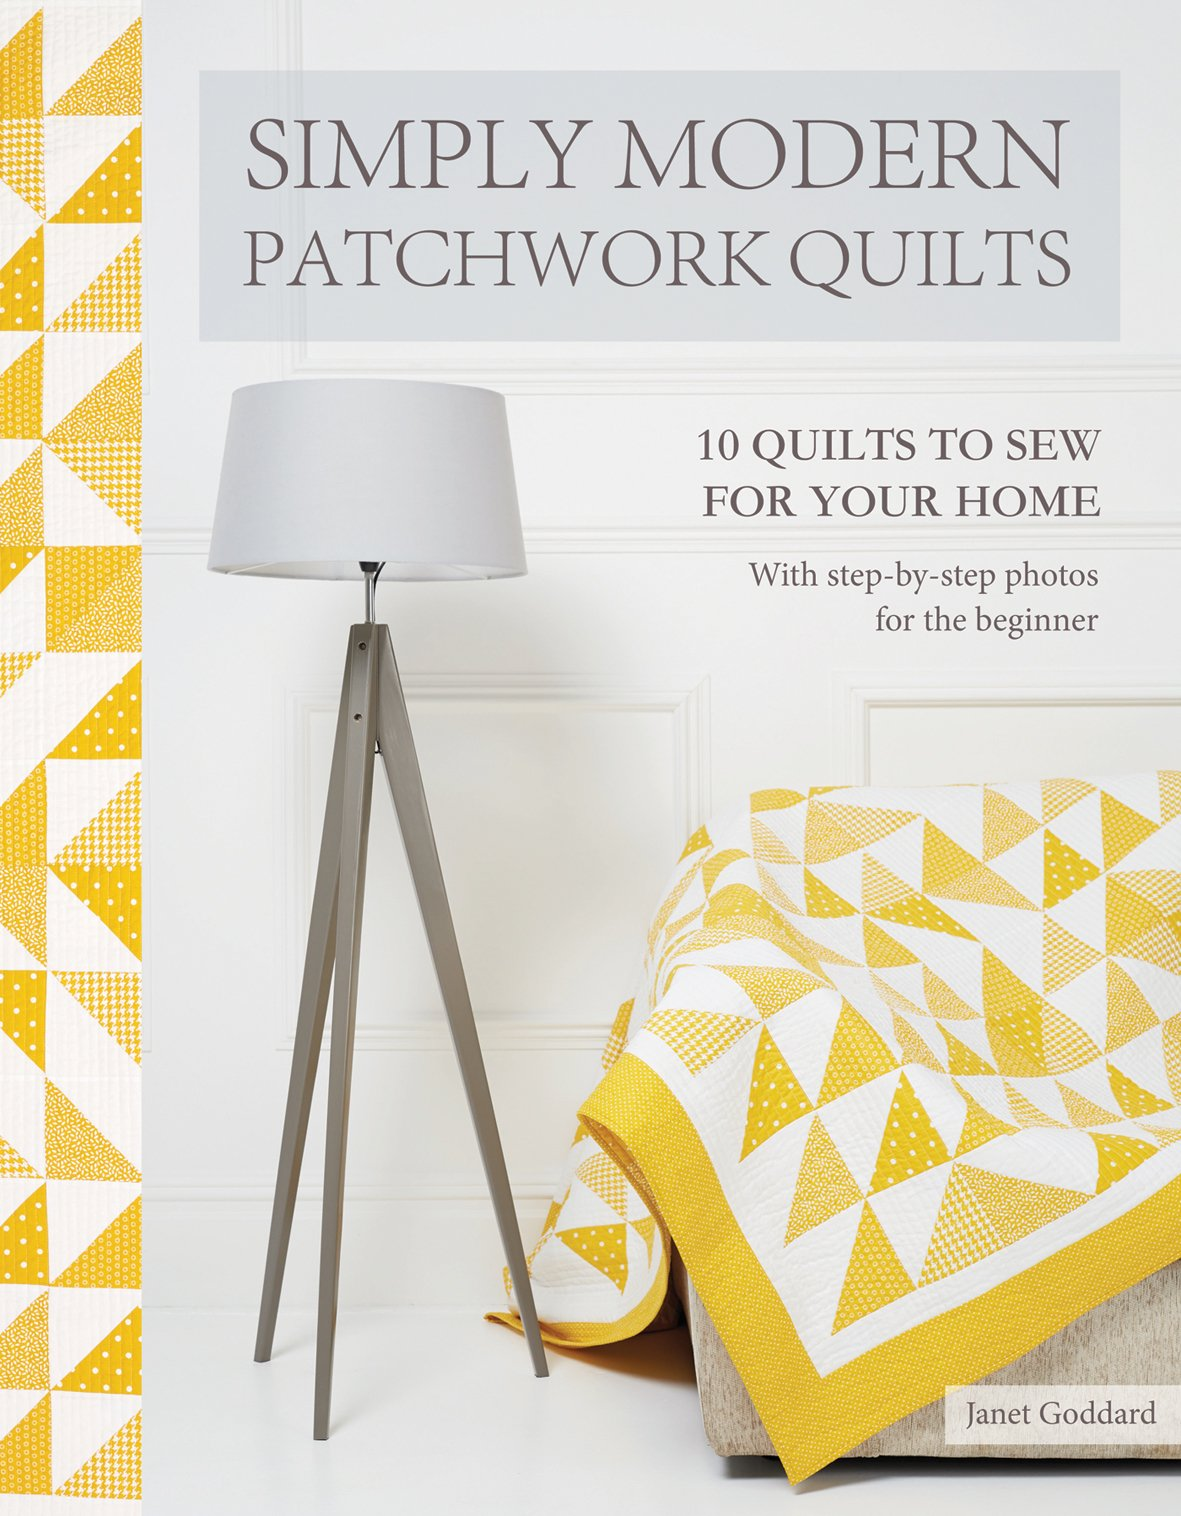 Simply Modern Patchwork Quilts Book | Janet Goddard